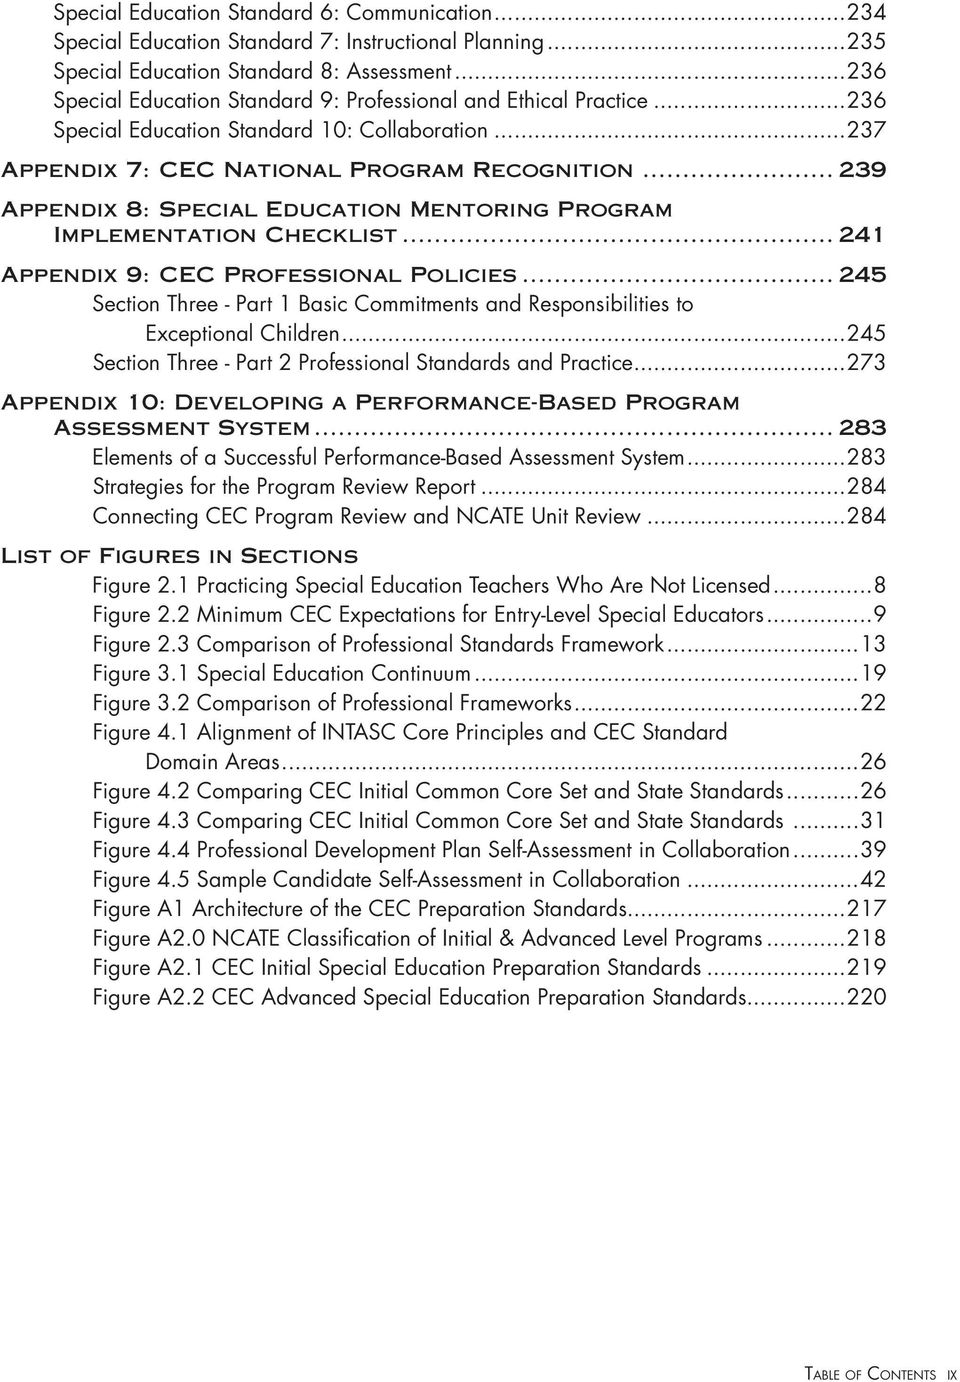 .. 239 Appendix 8: Special Education Mentoring Program Implementation Checklist... 241 Appendix 9: CEC Professional Policies.